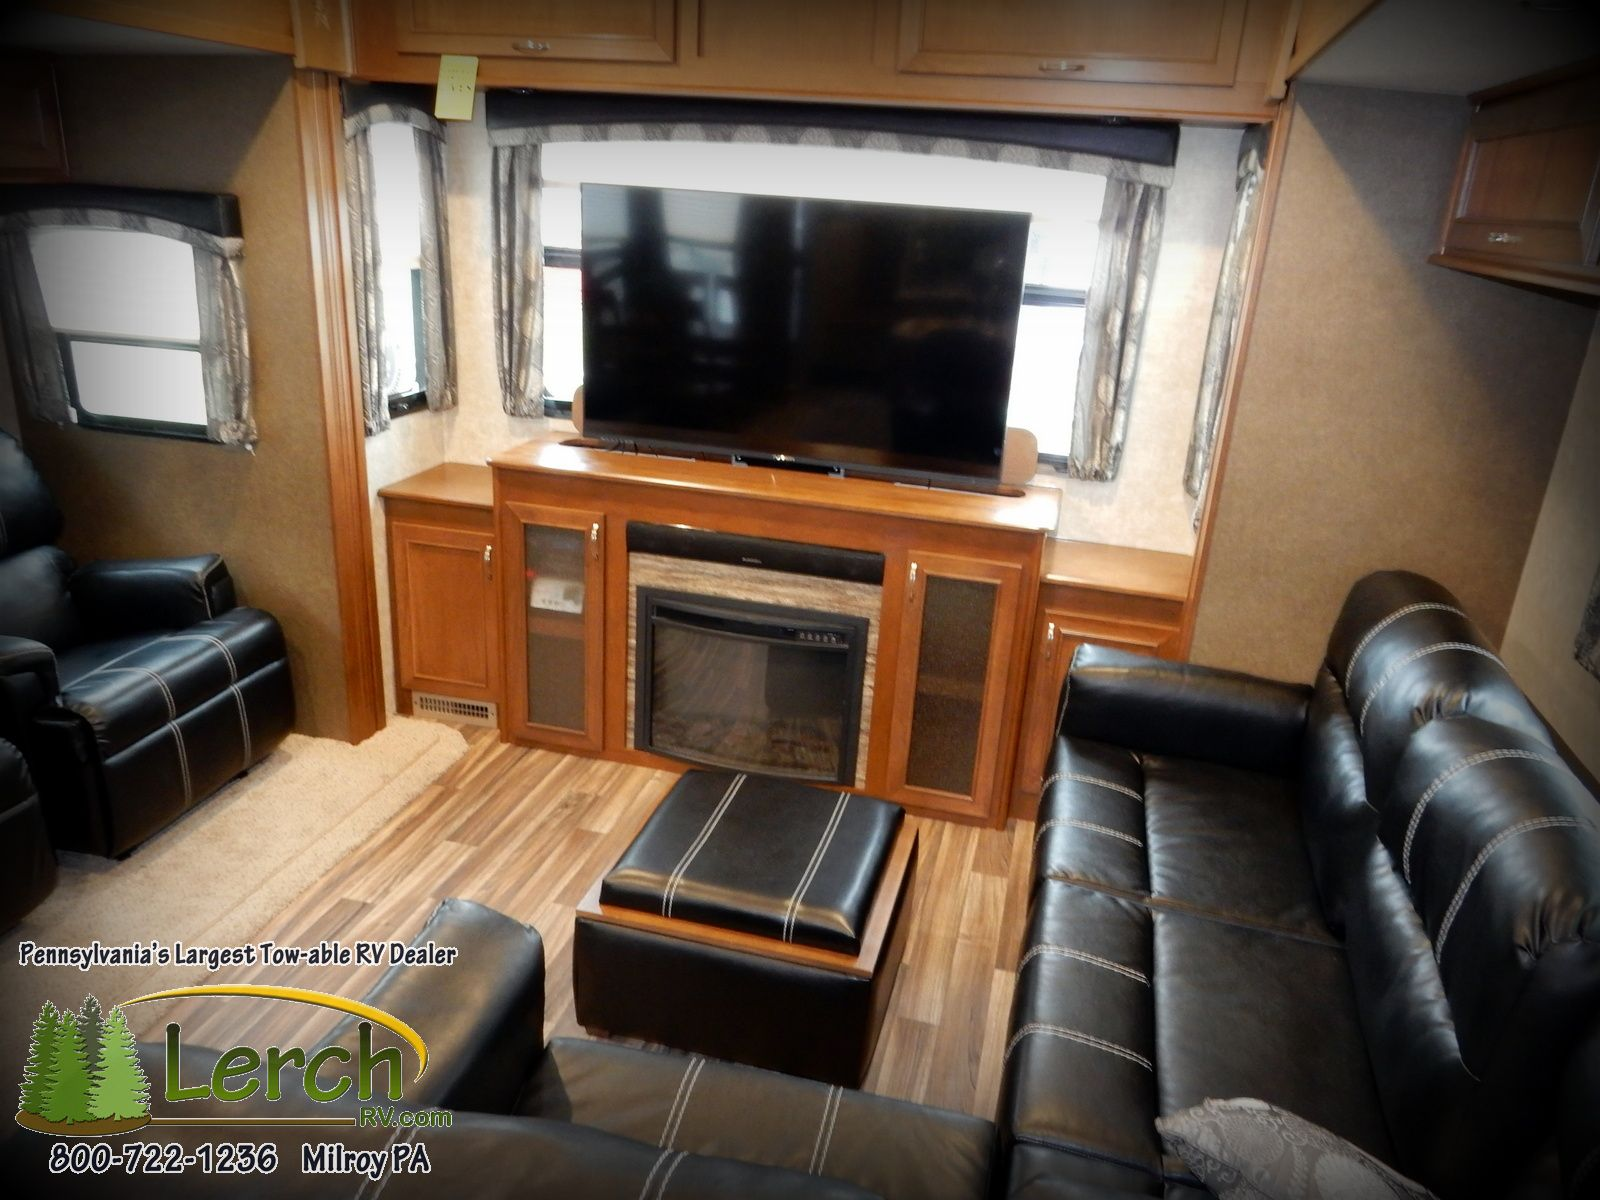 5th wheel rving is easy at lerch rv